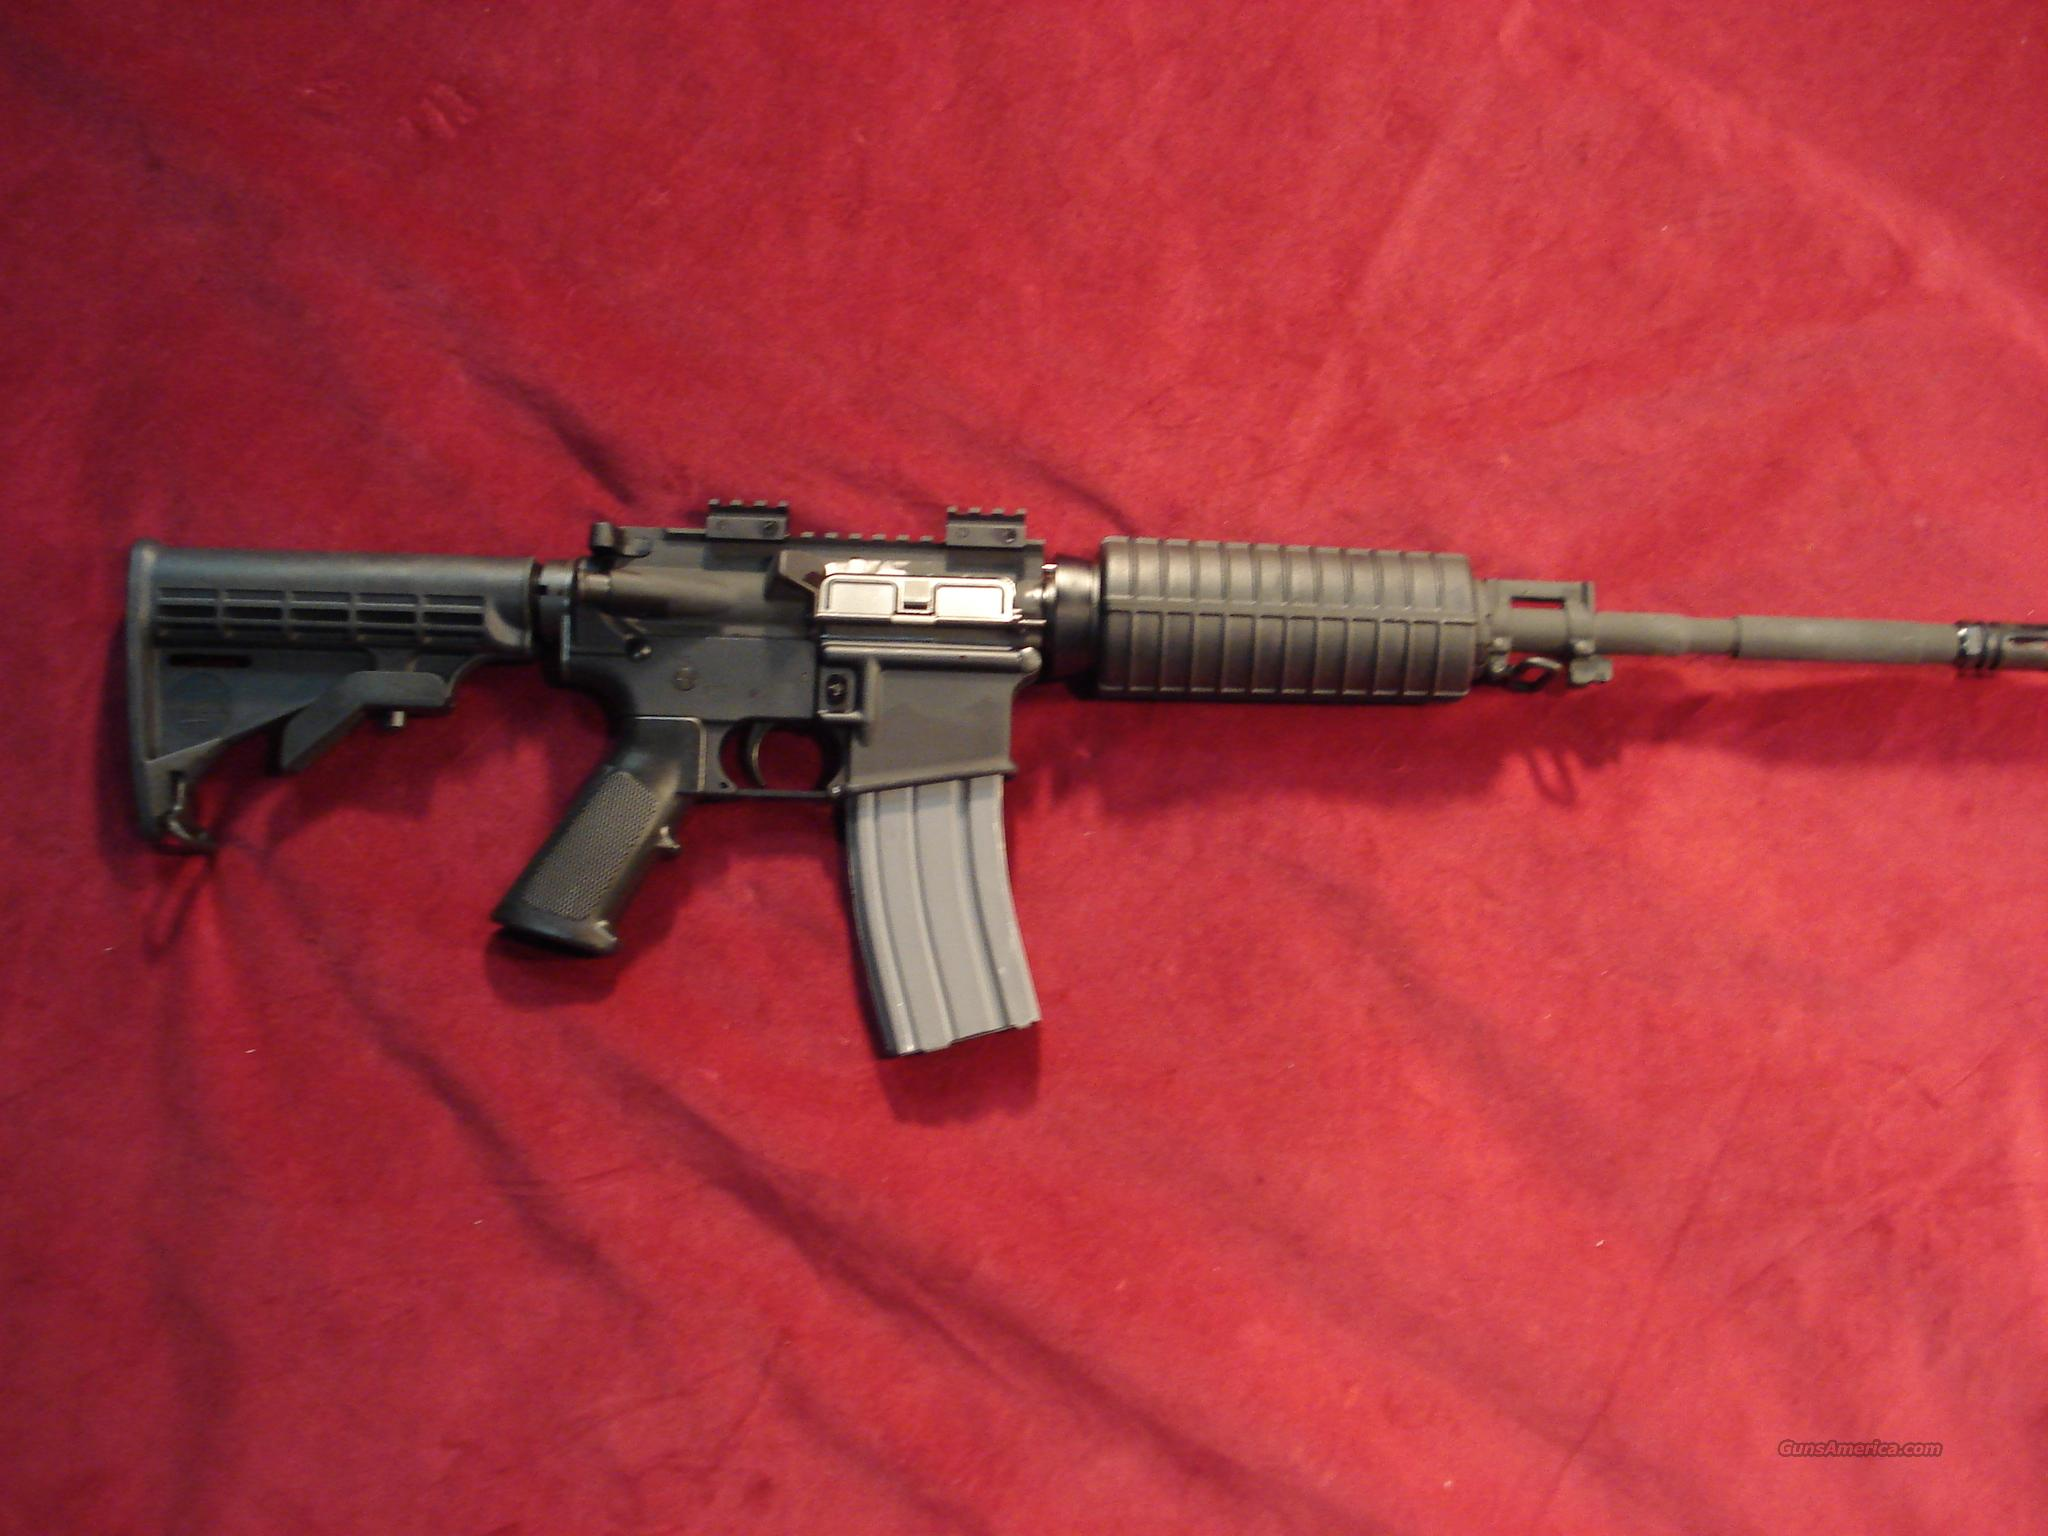 BUSHMASTER M4 O.R.C. ( OPTIC READY CARBINE)  Guns > Rifles > Bushmaster Rifles > Complete Rifles